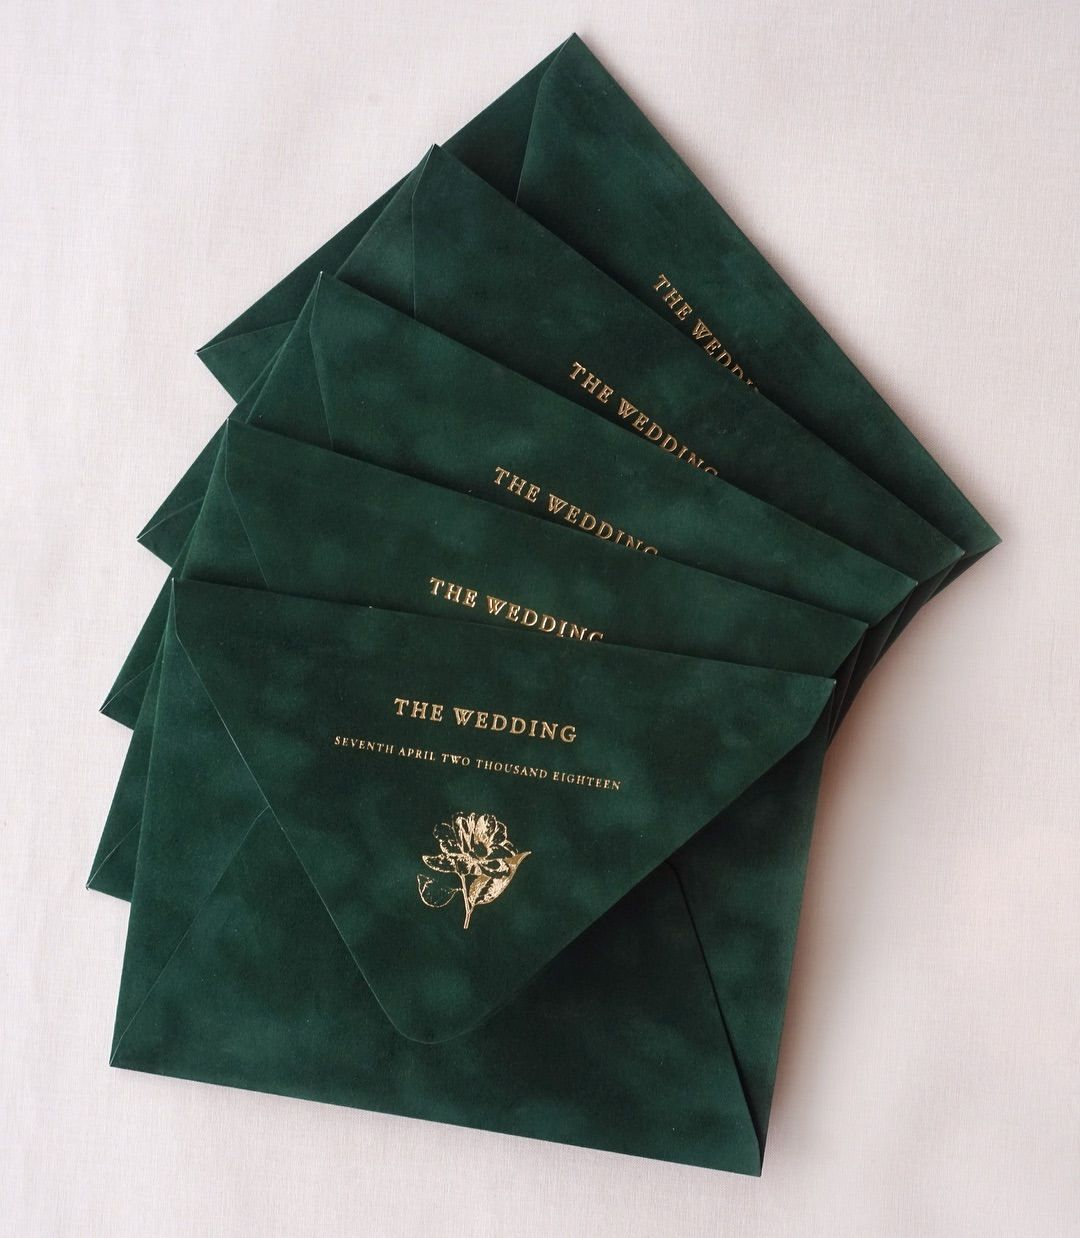 Incorporate your wedding color to your invitations - Dark emerald green velvet wedding invitation - Wedding Color Schemes for Fall - Wedding Soiree Blog by K'Mich, Philadelphia's premier resource for wedding planning and inspiration - parler studio on instagram